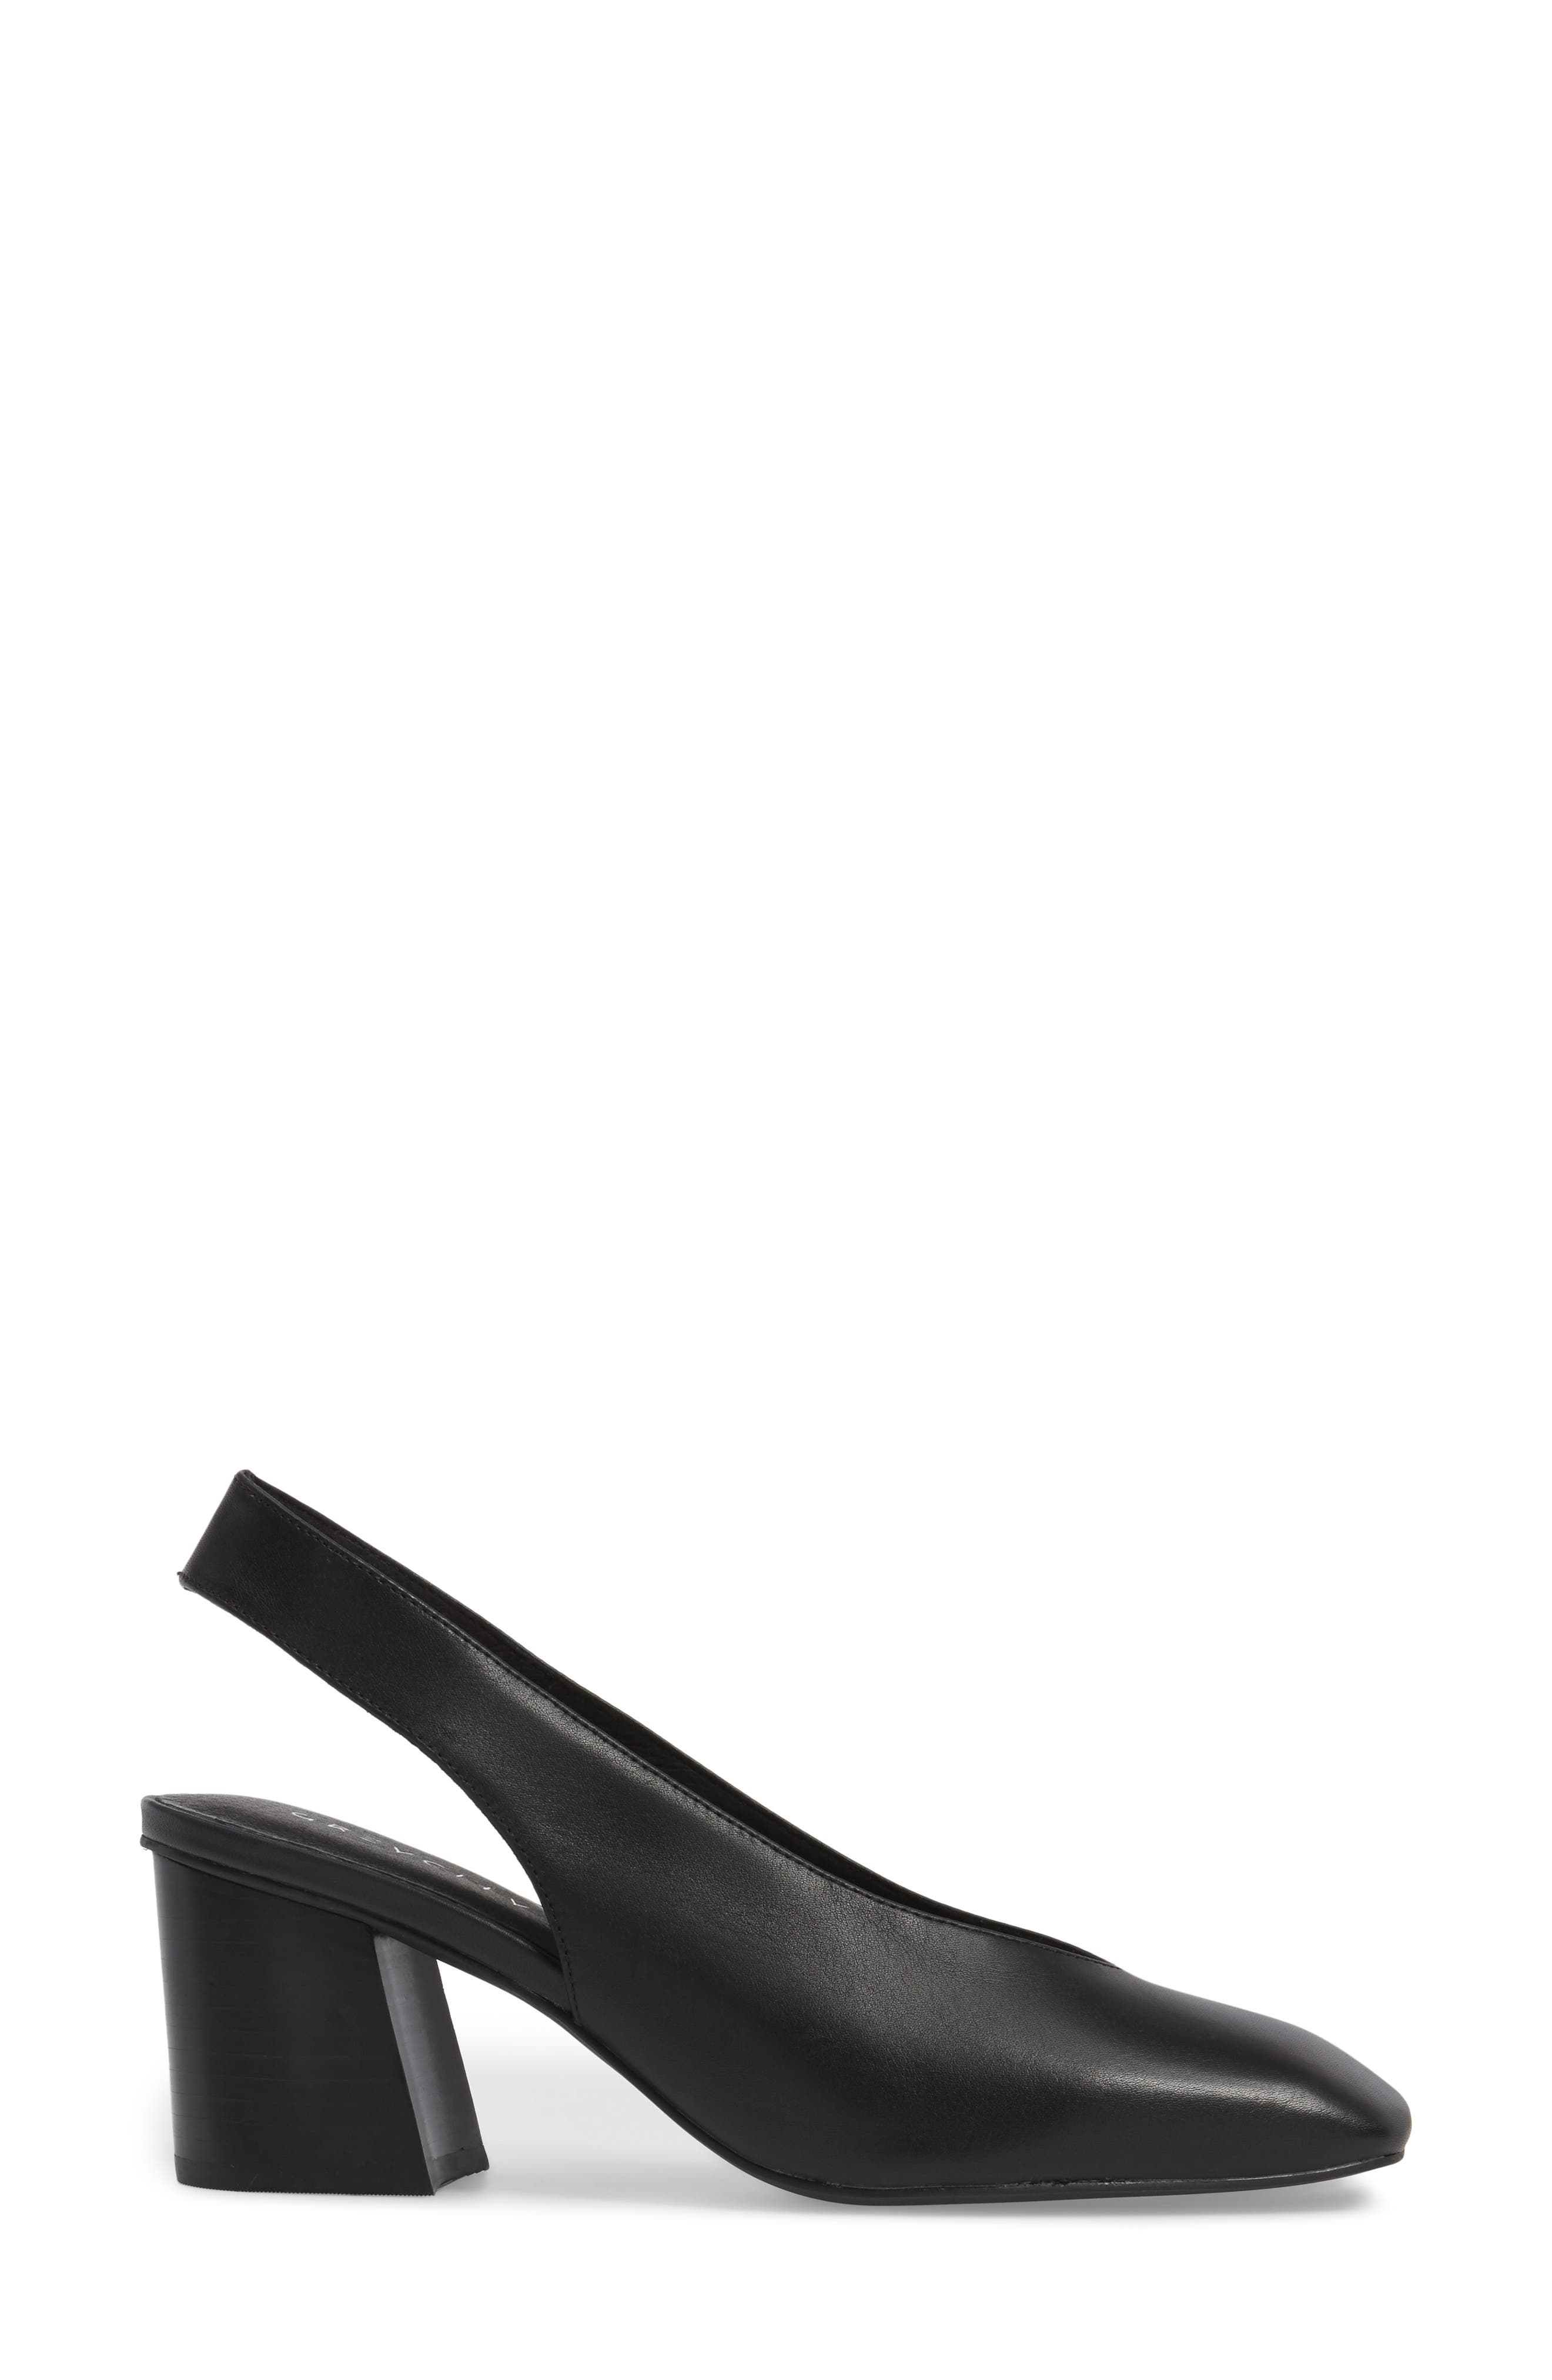 Sydney Square-Toe Slingback Pump,                             Alternate thumbnail 3, color,                             001